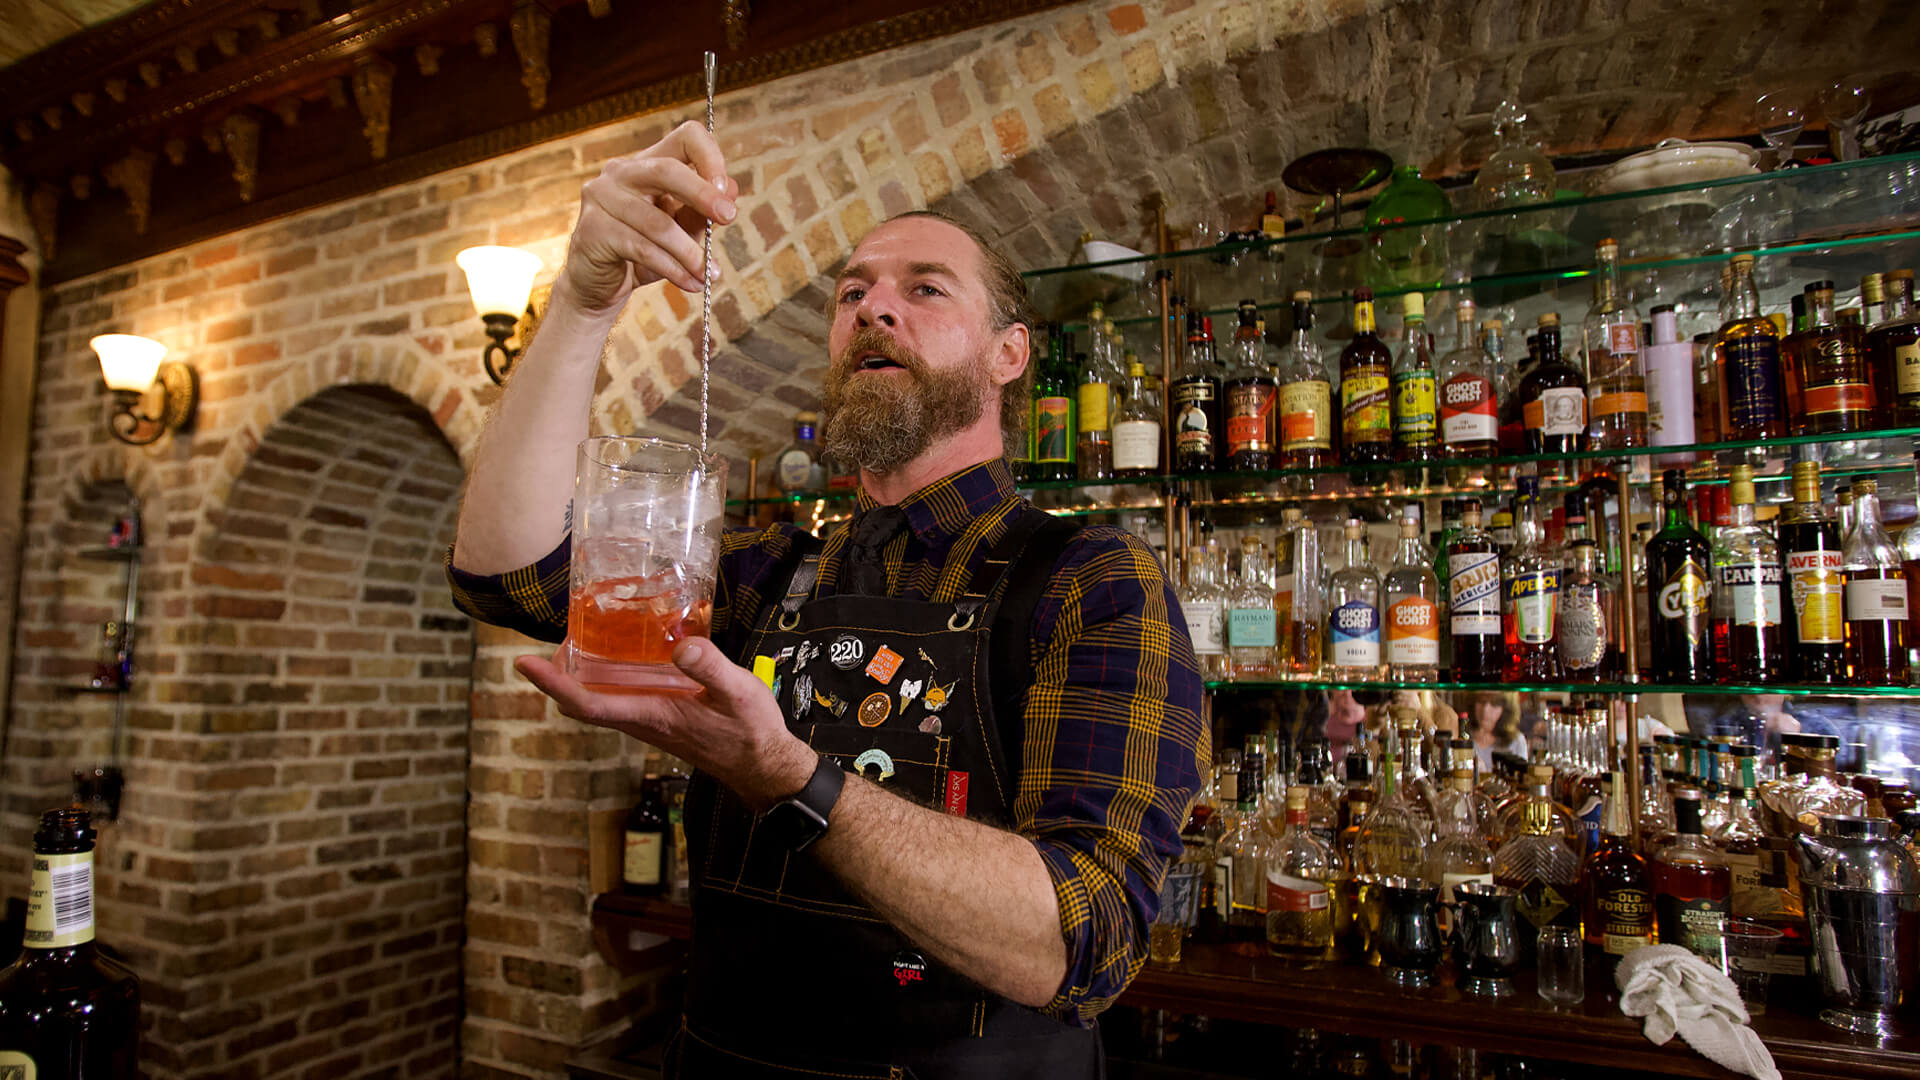 Bartender demonstrating how to use a mixer to make drinks at Savannah Speakeasy Cocktail Class